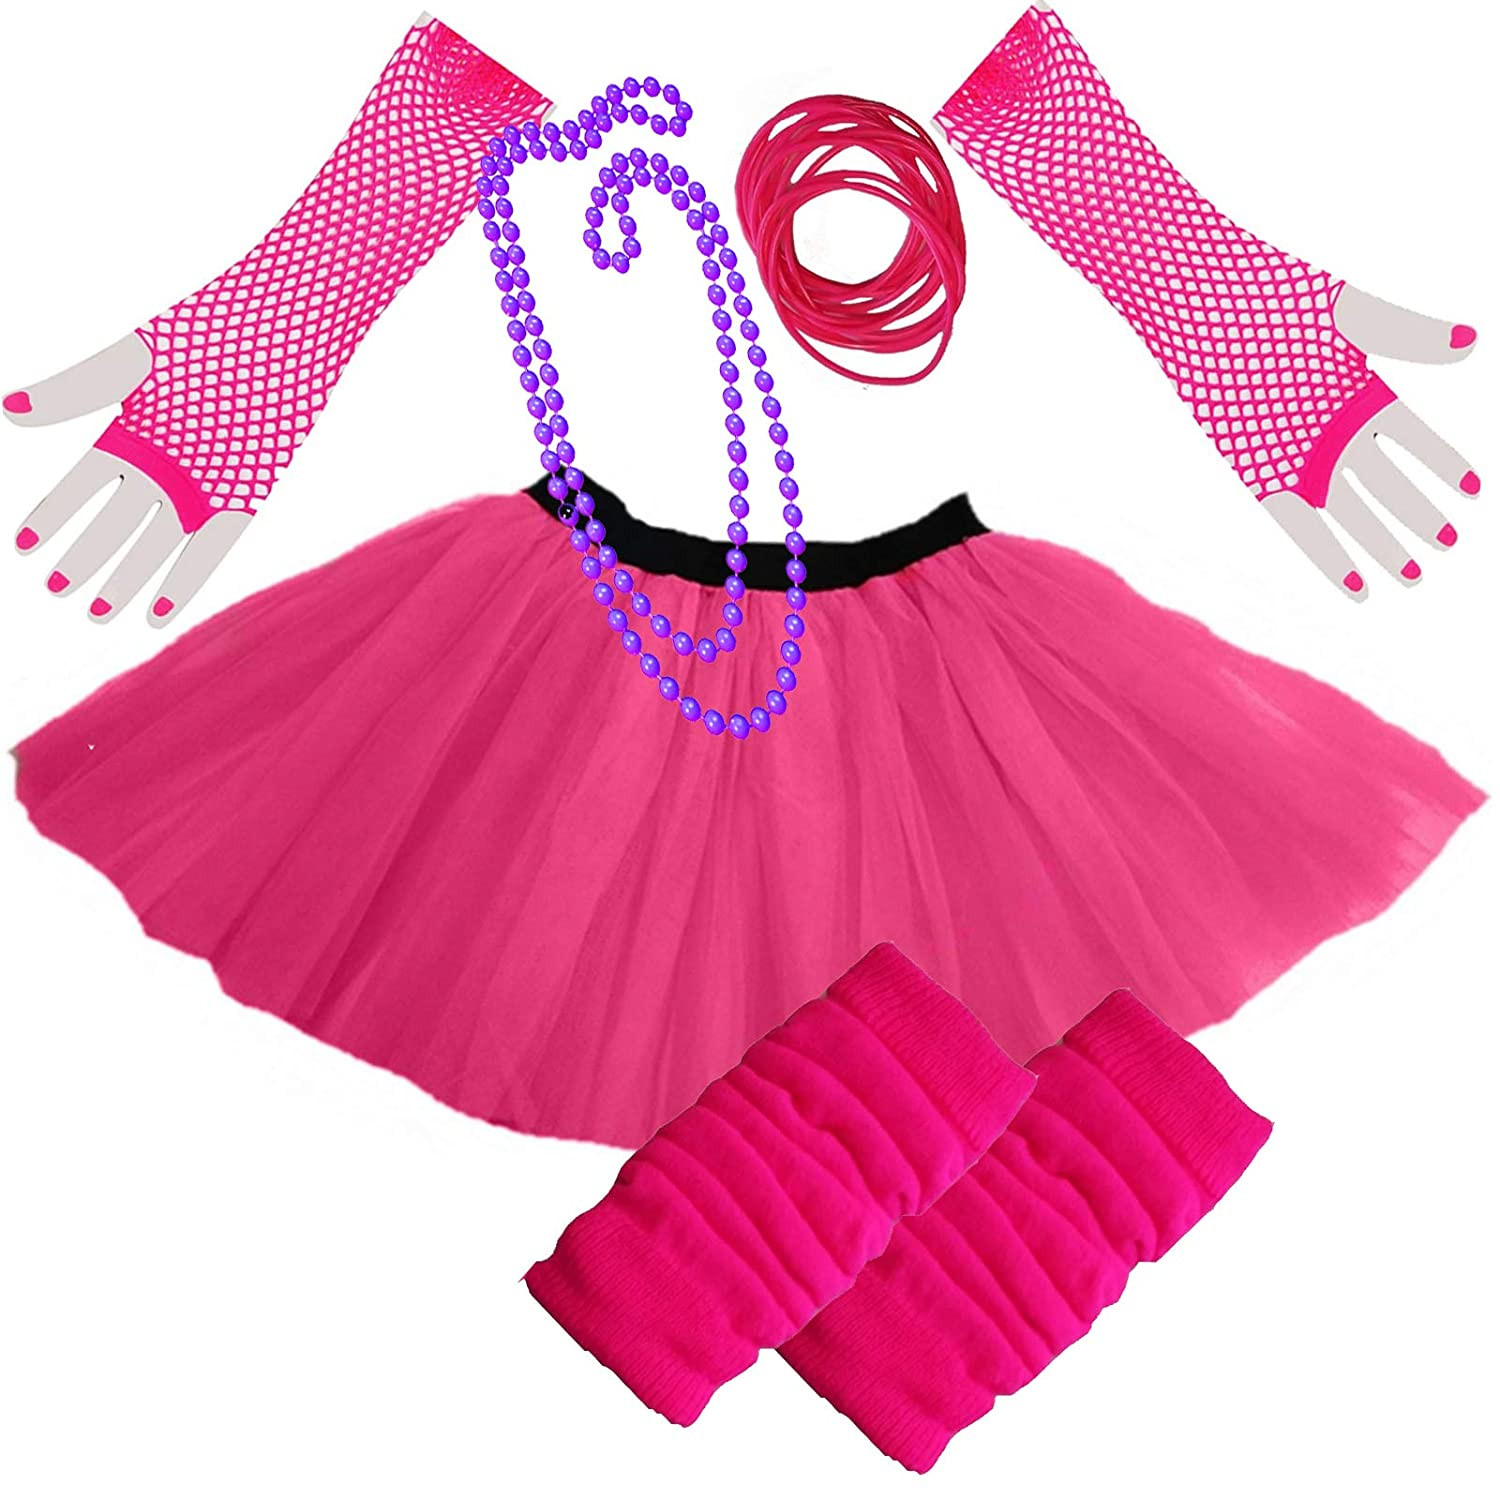 Ladies Size 8 to 18 Standard 80s Skirt with Accessories